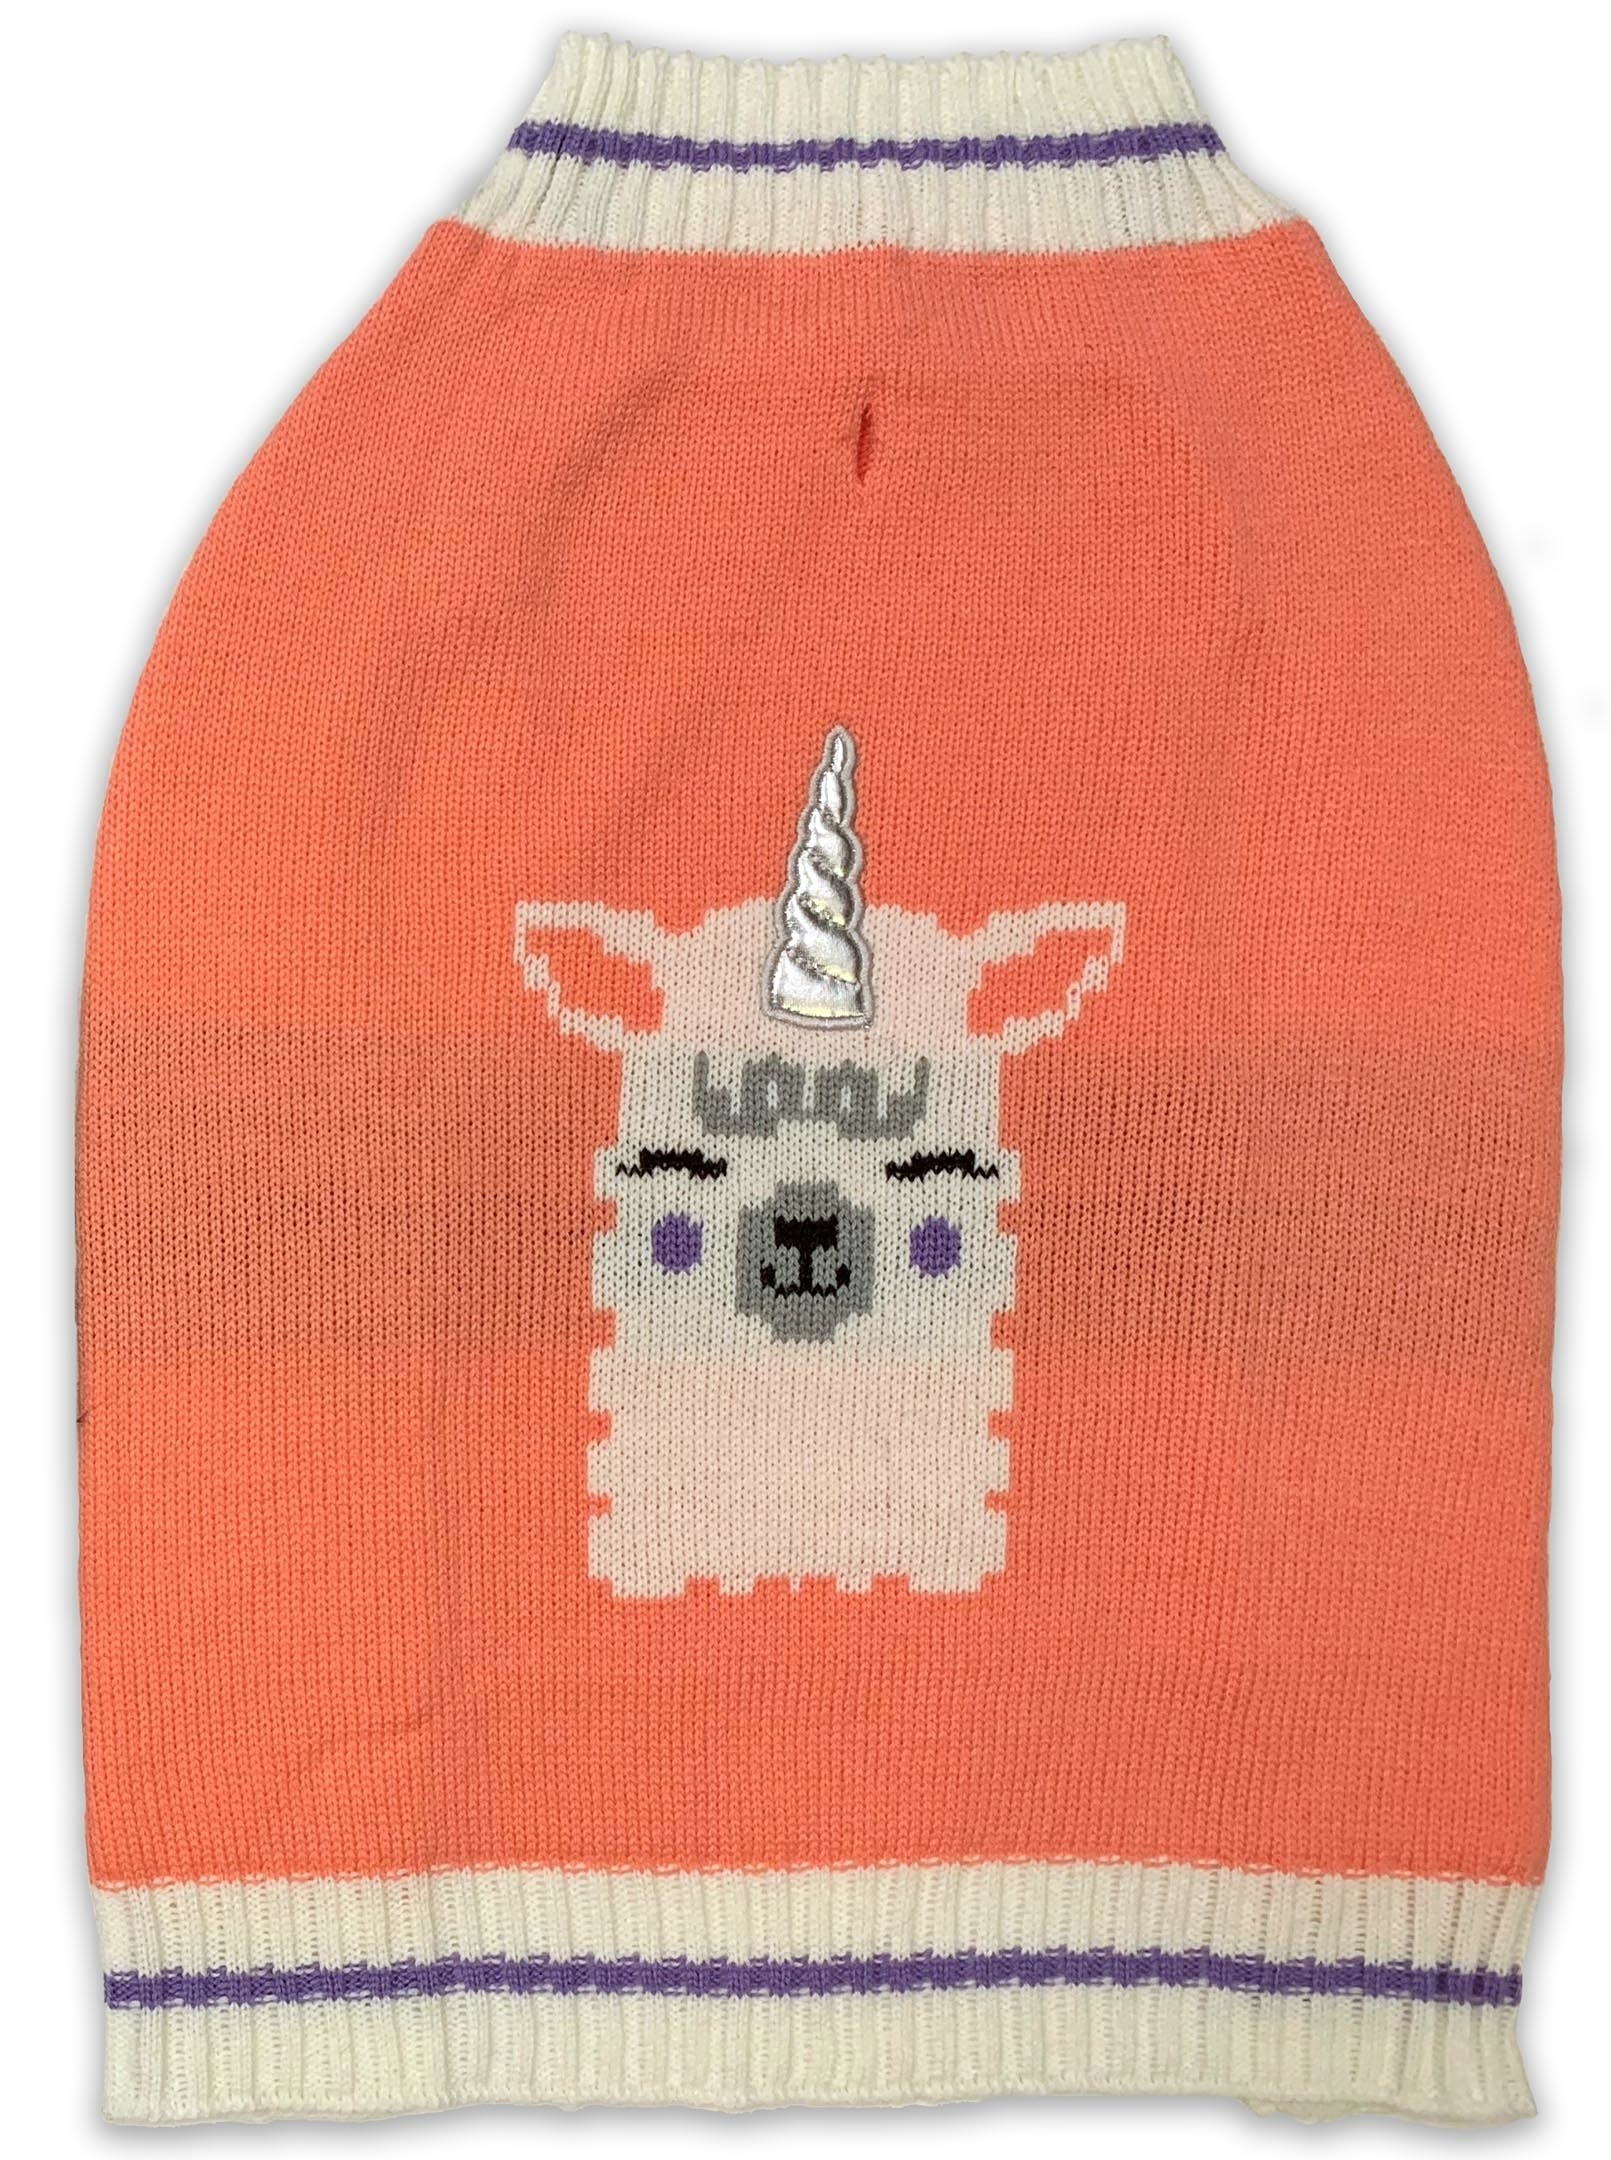 A coral dog sweater with purple and ivory varsity stripes and a llama stitched in the center